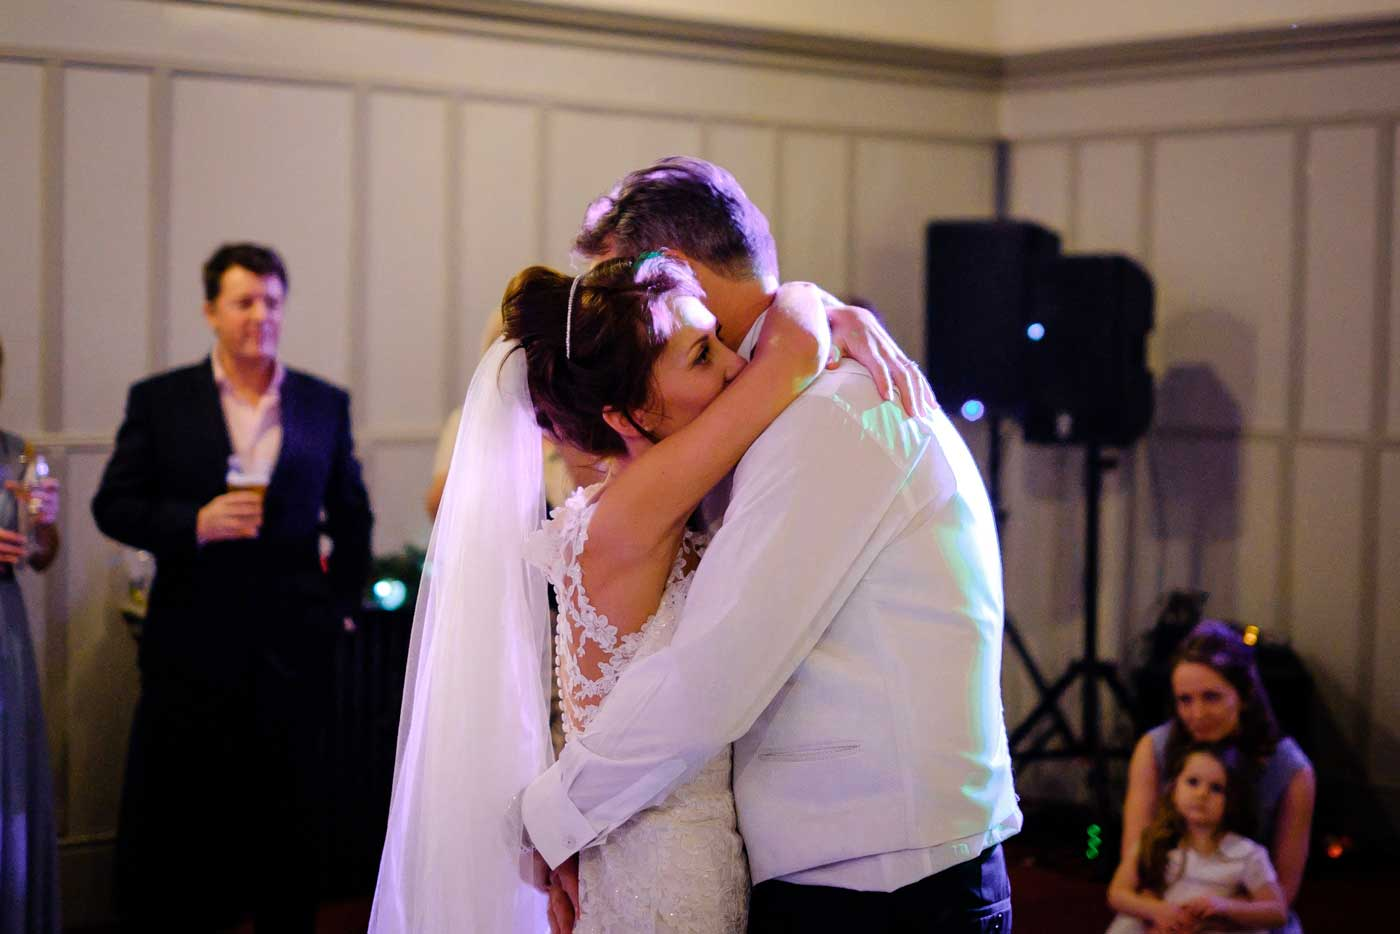 Bride and groom during their first dance by Stanbrook Abbey wedding photographer Clive Blair Photography